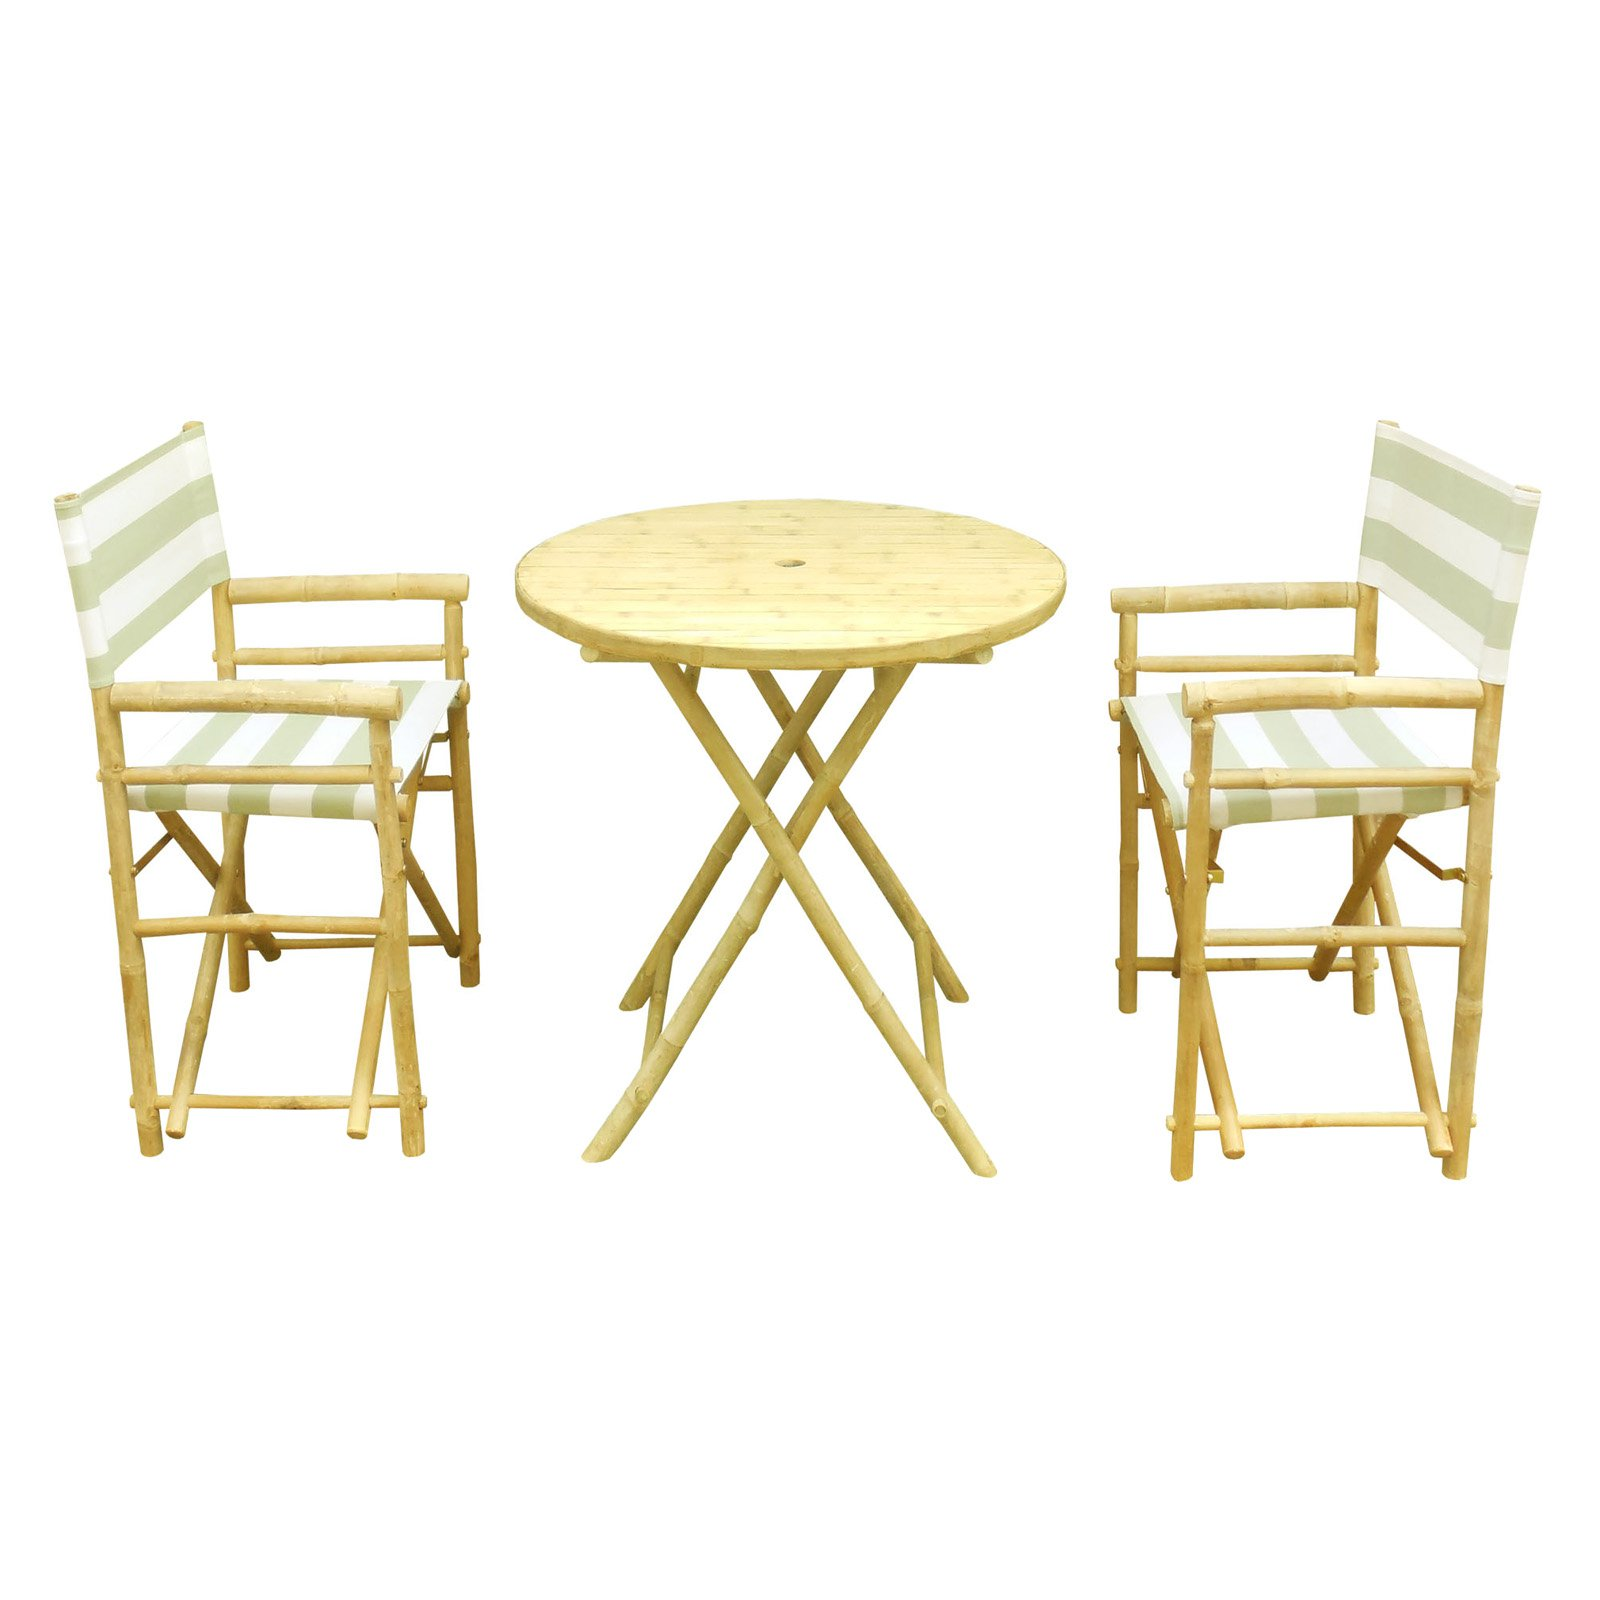 Zew Hand Crafted 3 Piece Round Folding Bamboo Patio Dining Set with Director Chairs